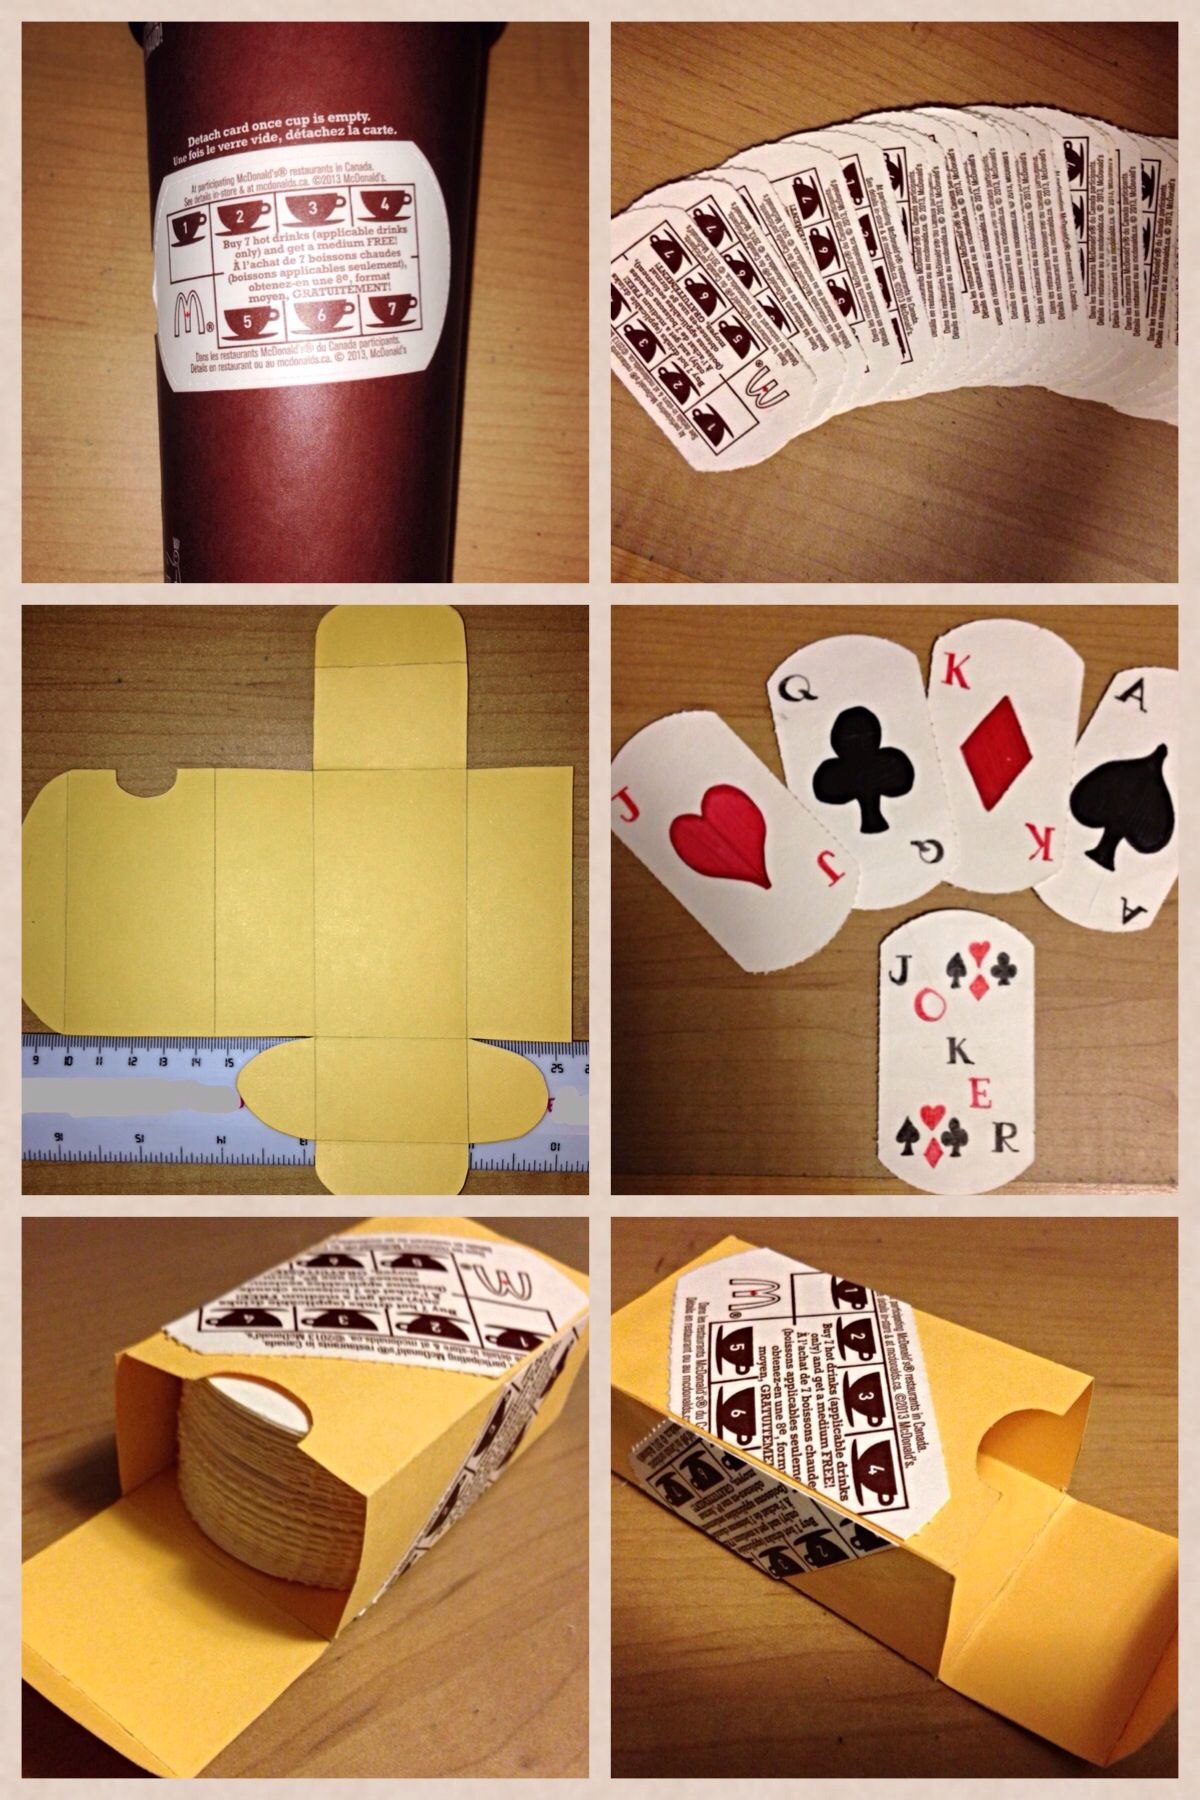 Another project using mcdonalds coffee loyalty cards from